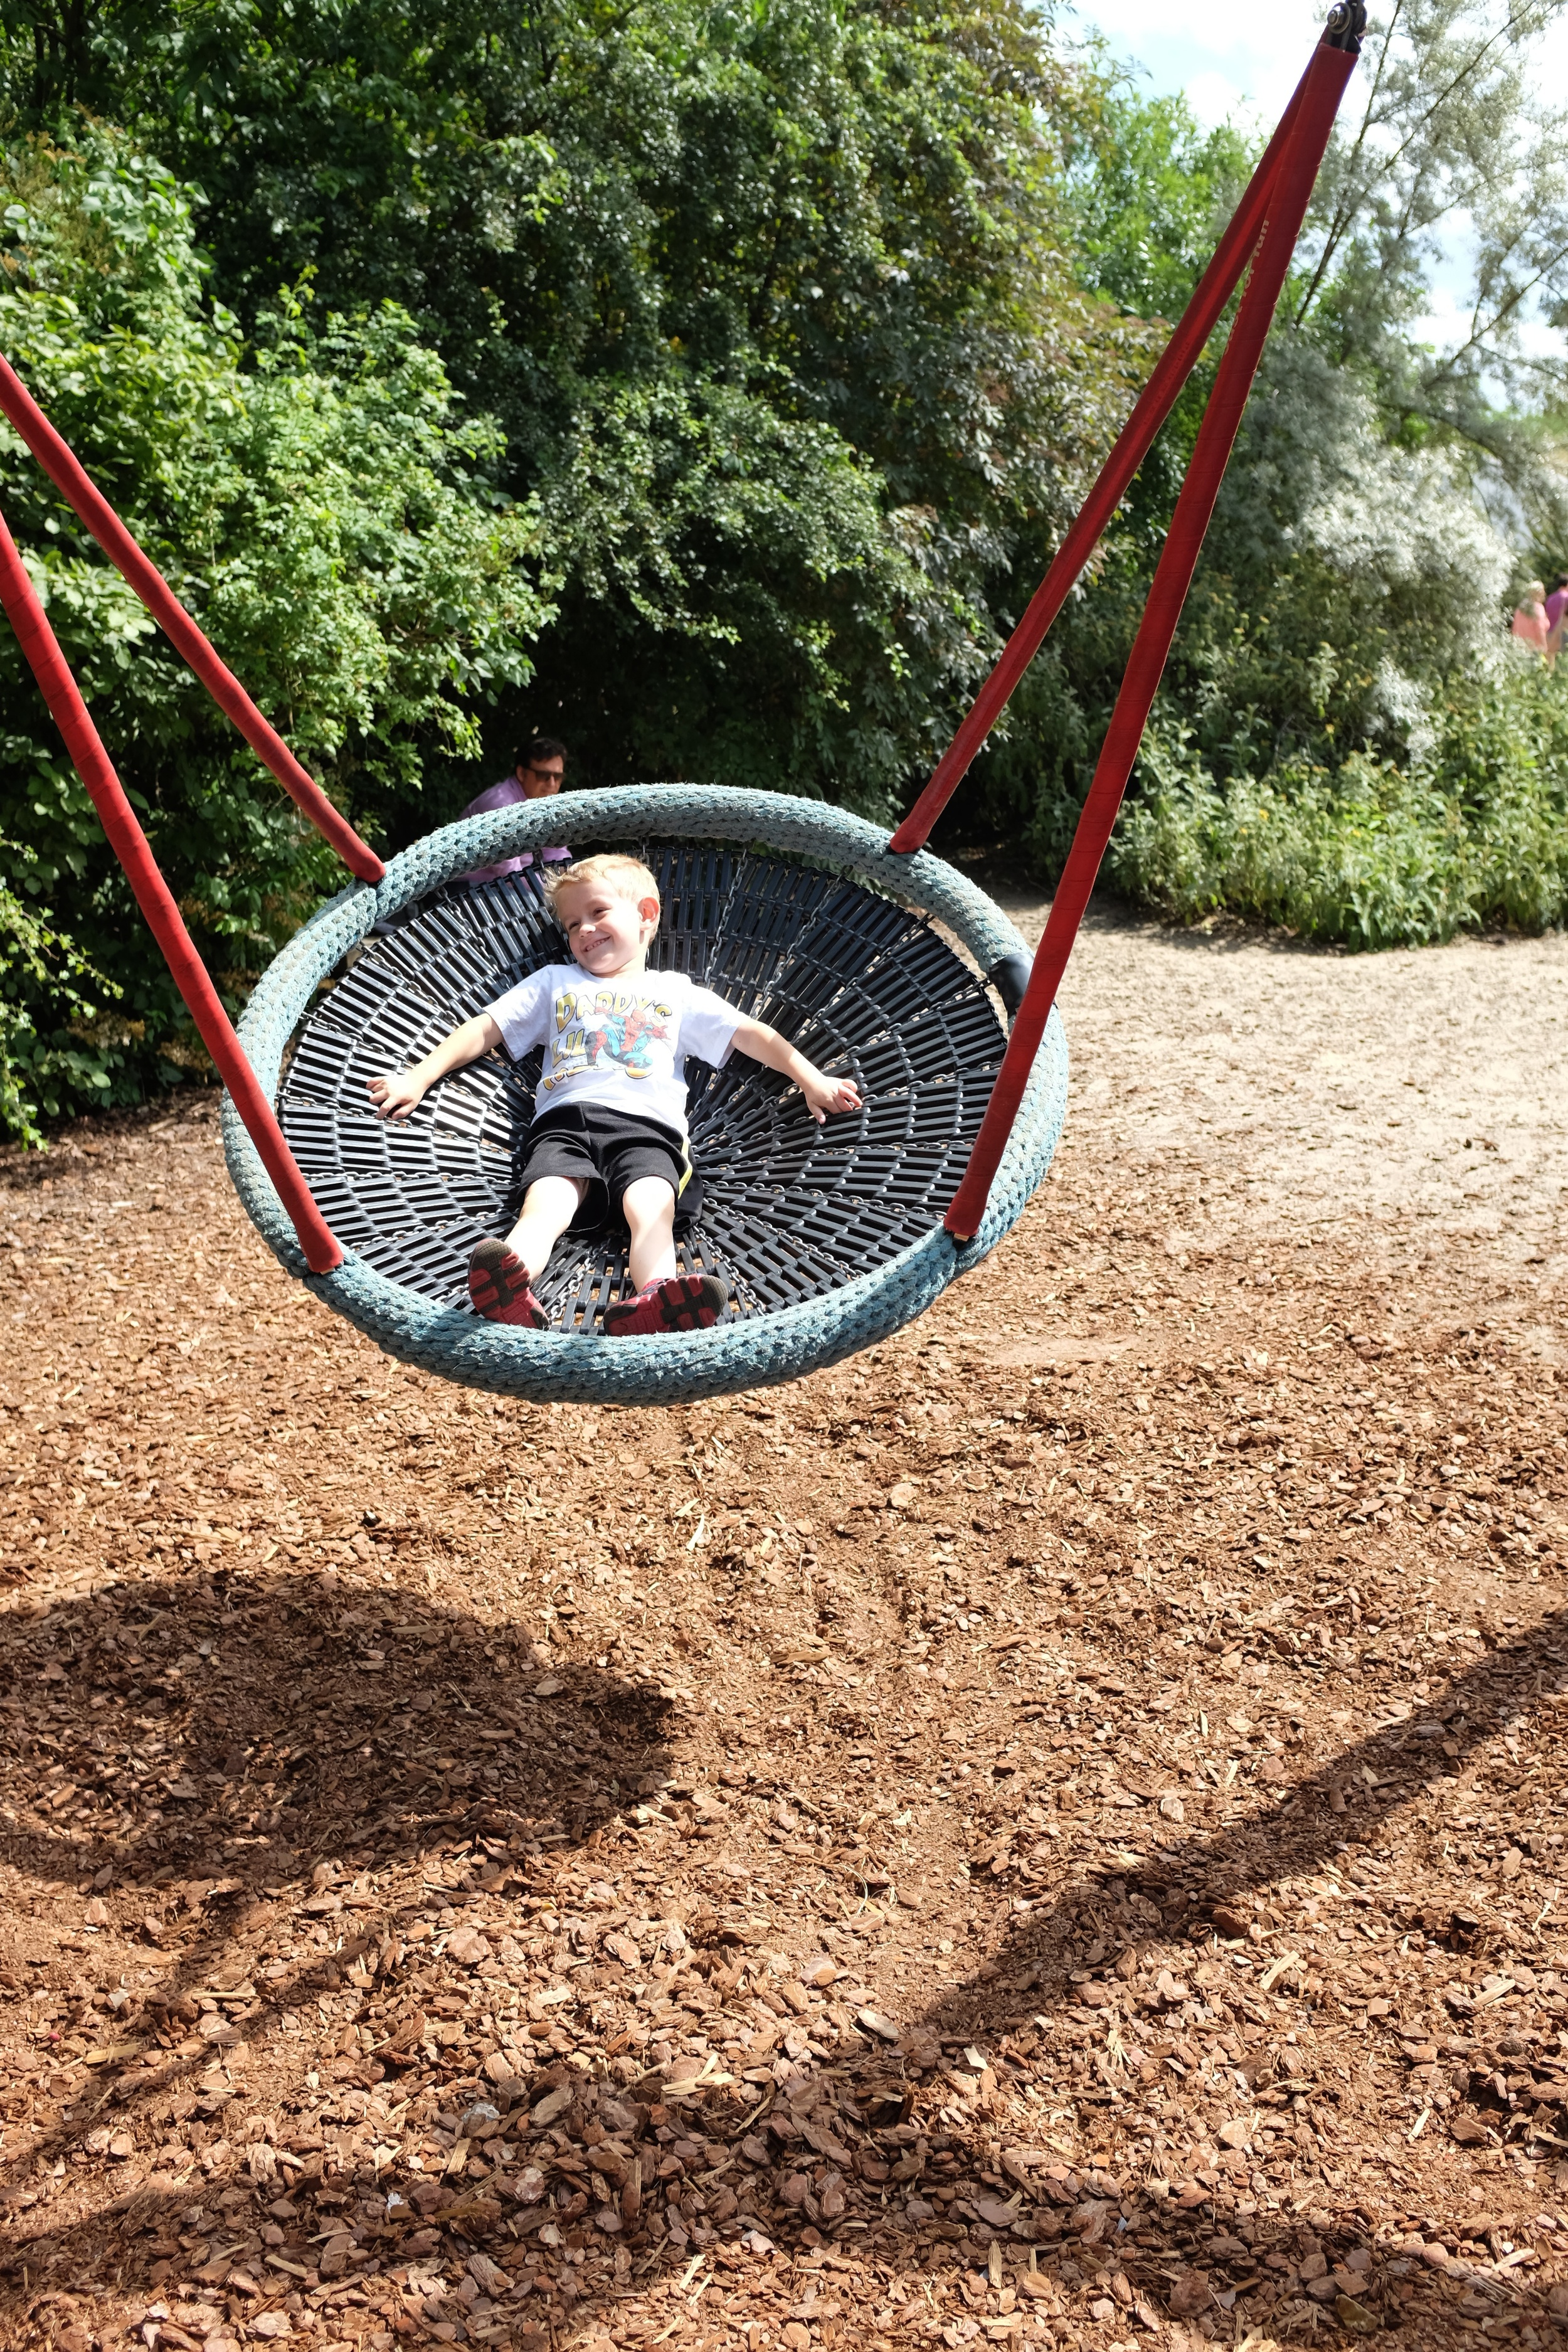 The crazy swing...Kian's favorite thing on the playground